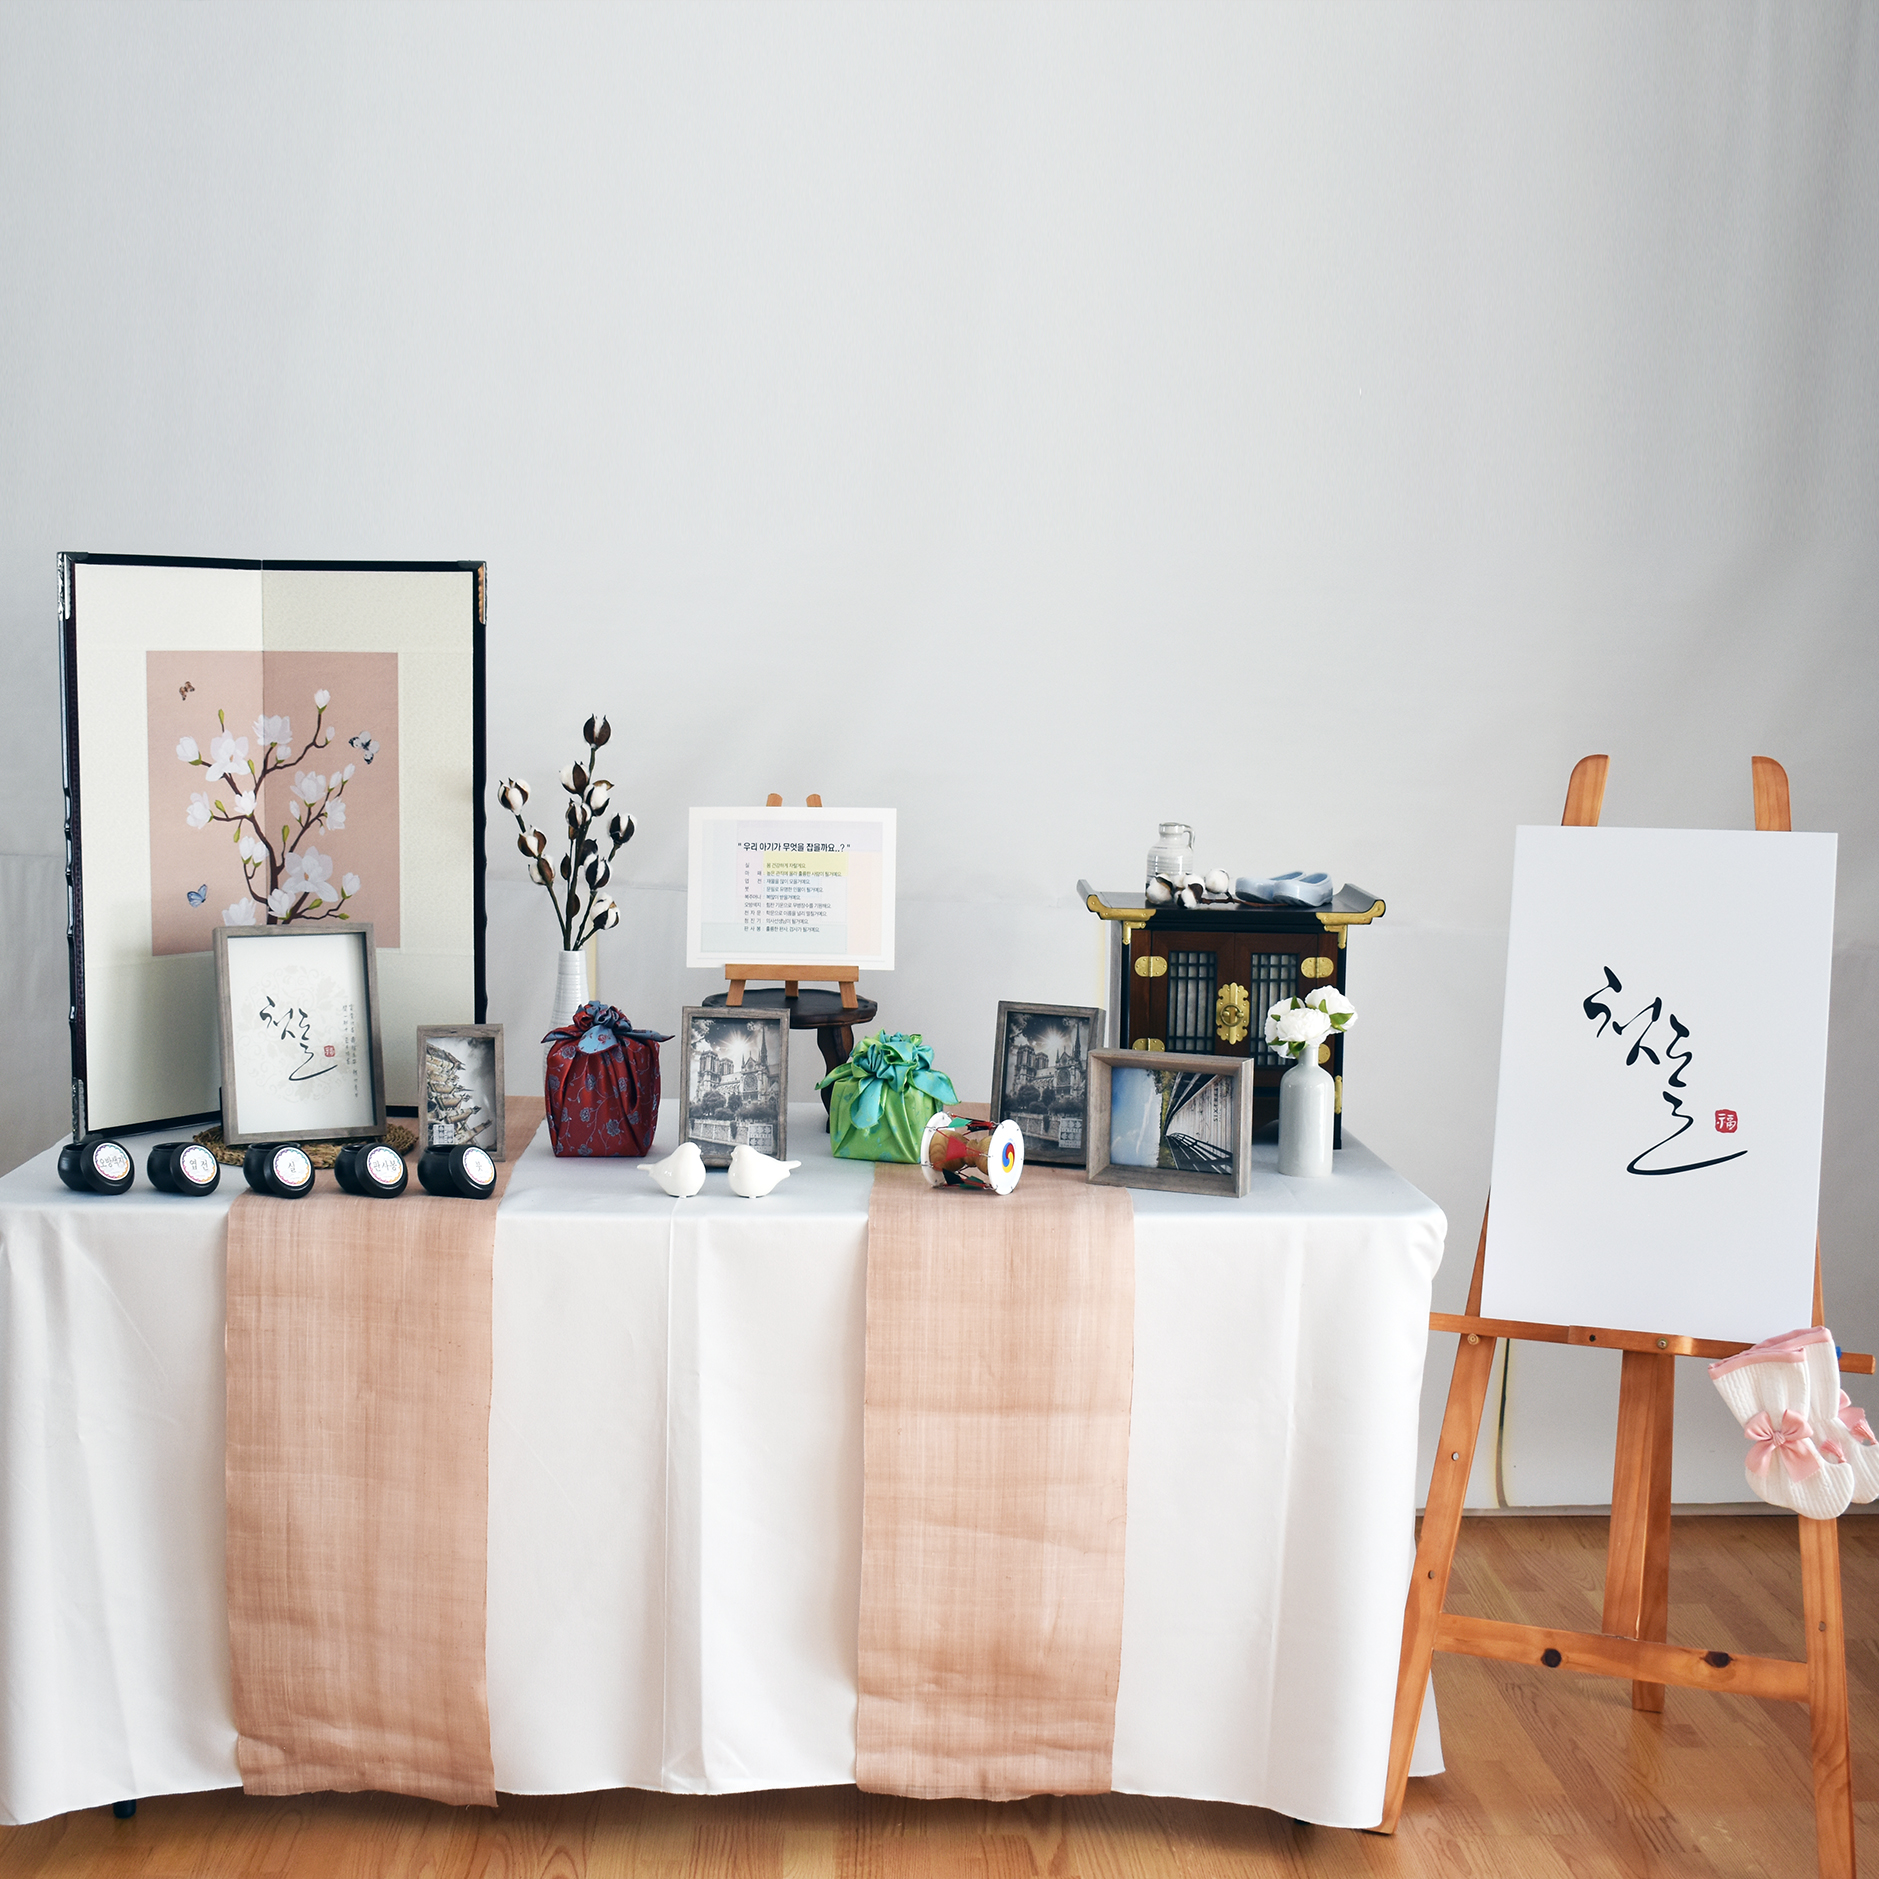 Traditional photo table #1 - Included: Mini traditional folding screen, 4 picture frames(5x7), 1 picture frames(4x6), traditional phone table, traditional rubber shoes, mini janggu, 2 traditional wrapping boxes, 6 Doljabi traditional jars, 2 birds, mini wooden table, flowers and vase, easel, first birthday board, traditional socks.상품구성: 미니병풍, 액자 5x7 4개, 액자 4x6 1개, 전통 창살 전화대, 고무신, 미니장구, 선물보자기 2개, 돌잡이 항아리6개, 모시 러너, 사랑새, 개다리 소반, 장식꽃, 목화와 꽃병, 이젤, 첫돌 보드, 버선